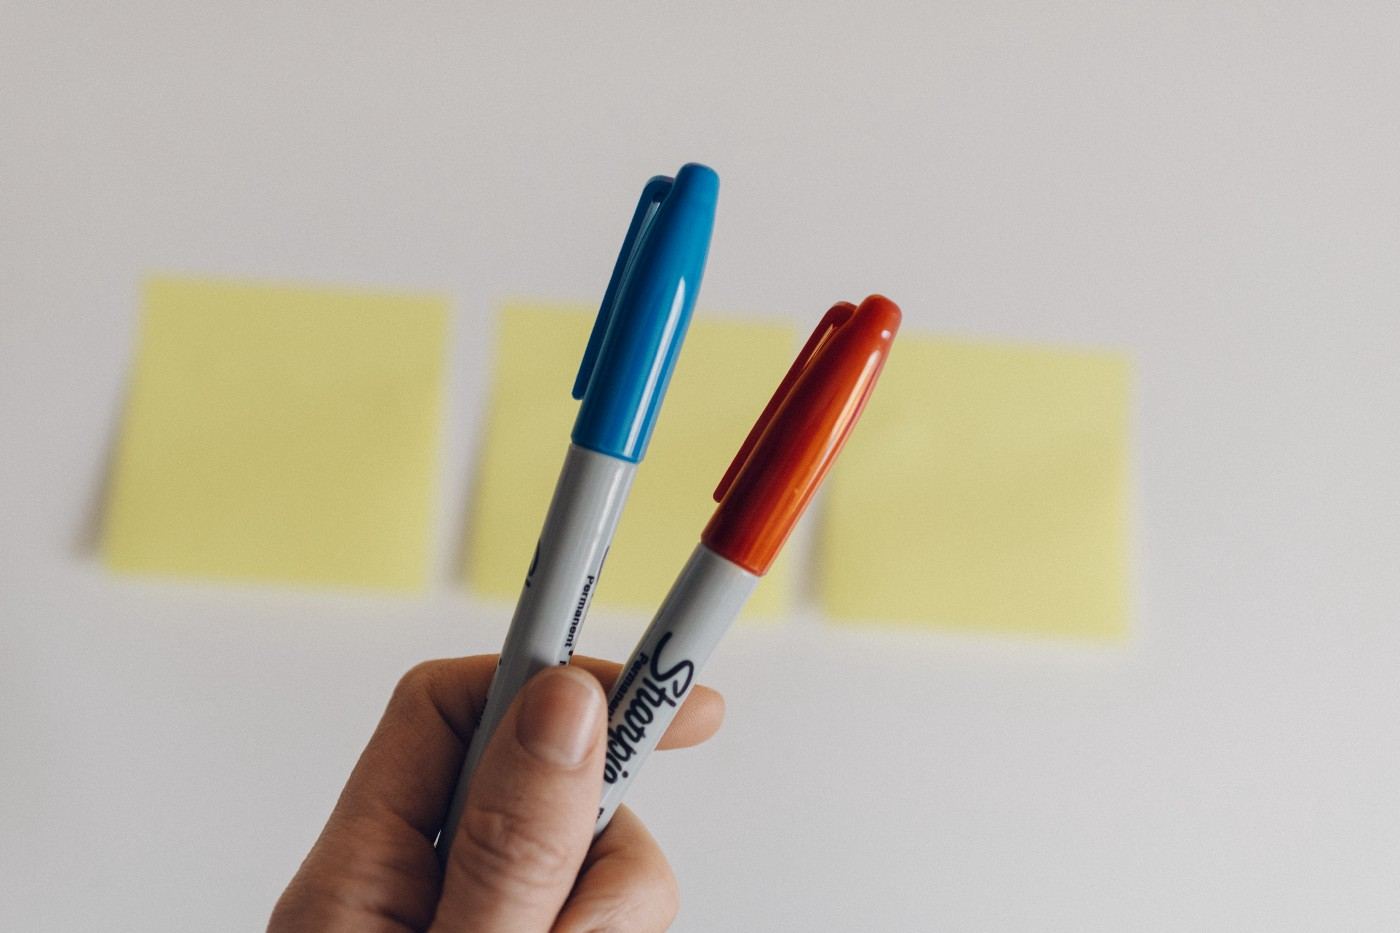 A blue and orange permanent marker is held up to camera in front of two post-it notes